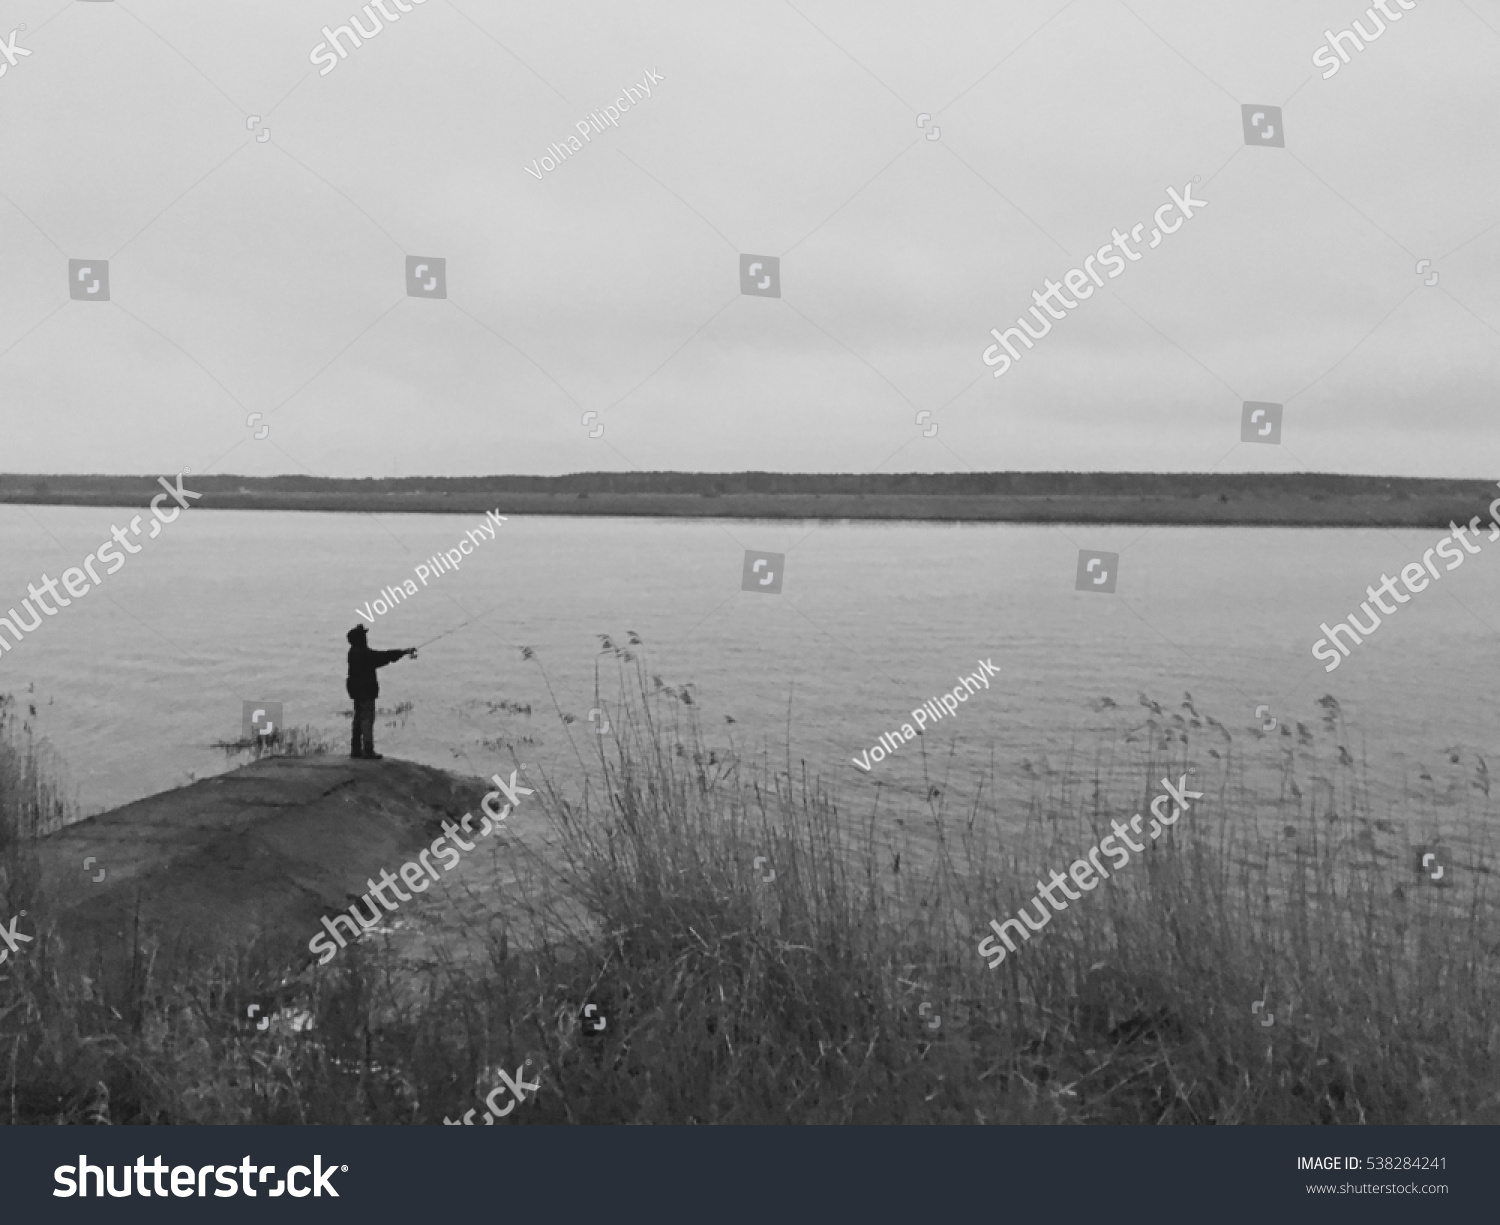 Fisherman catching fish near river evening stock photo for Where to get a fishing license near me